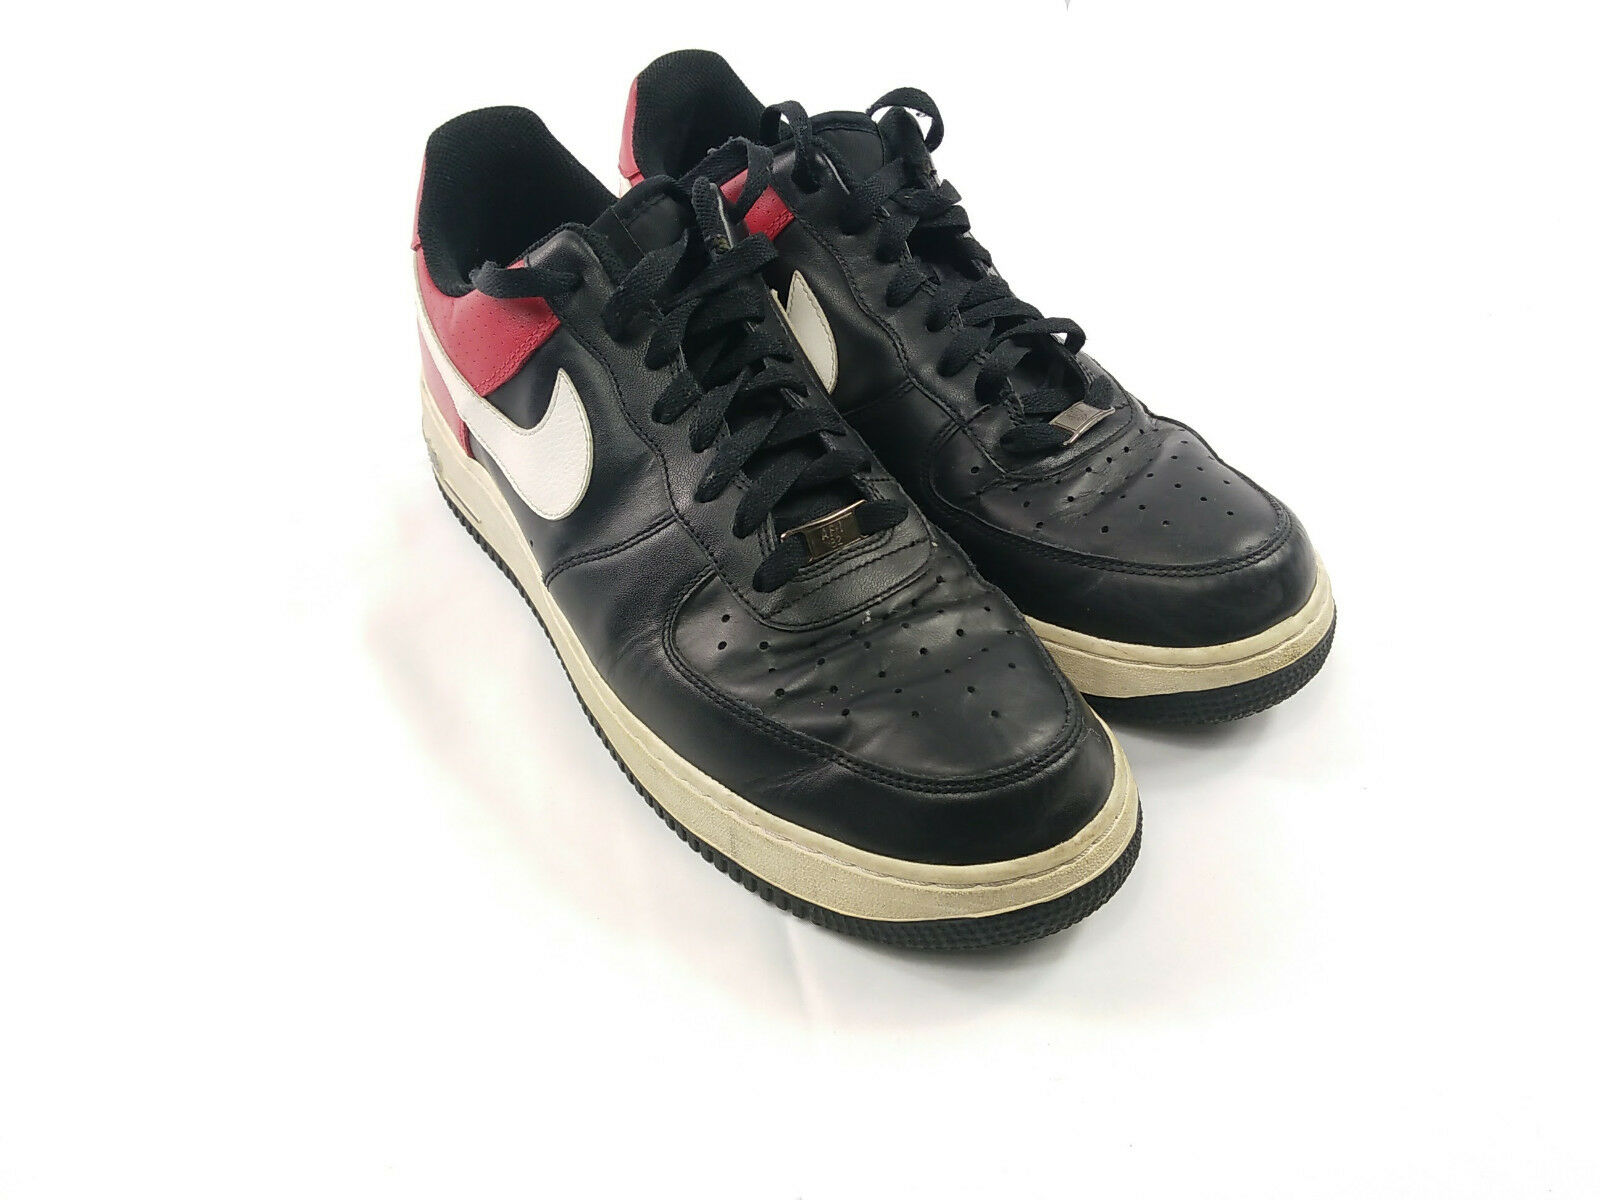 f77d2b5a210f Nike Air Force 1 07 Red Black White Size 12 12 12 315122- MEN S SIZE 14  NIKE PRESTO FLY ATHLETIC SHOES ...